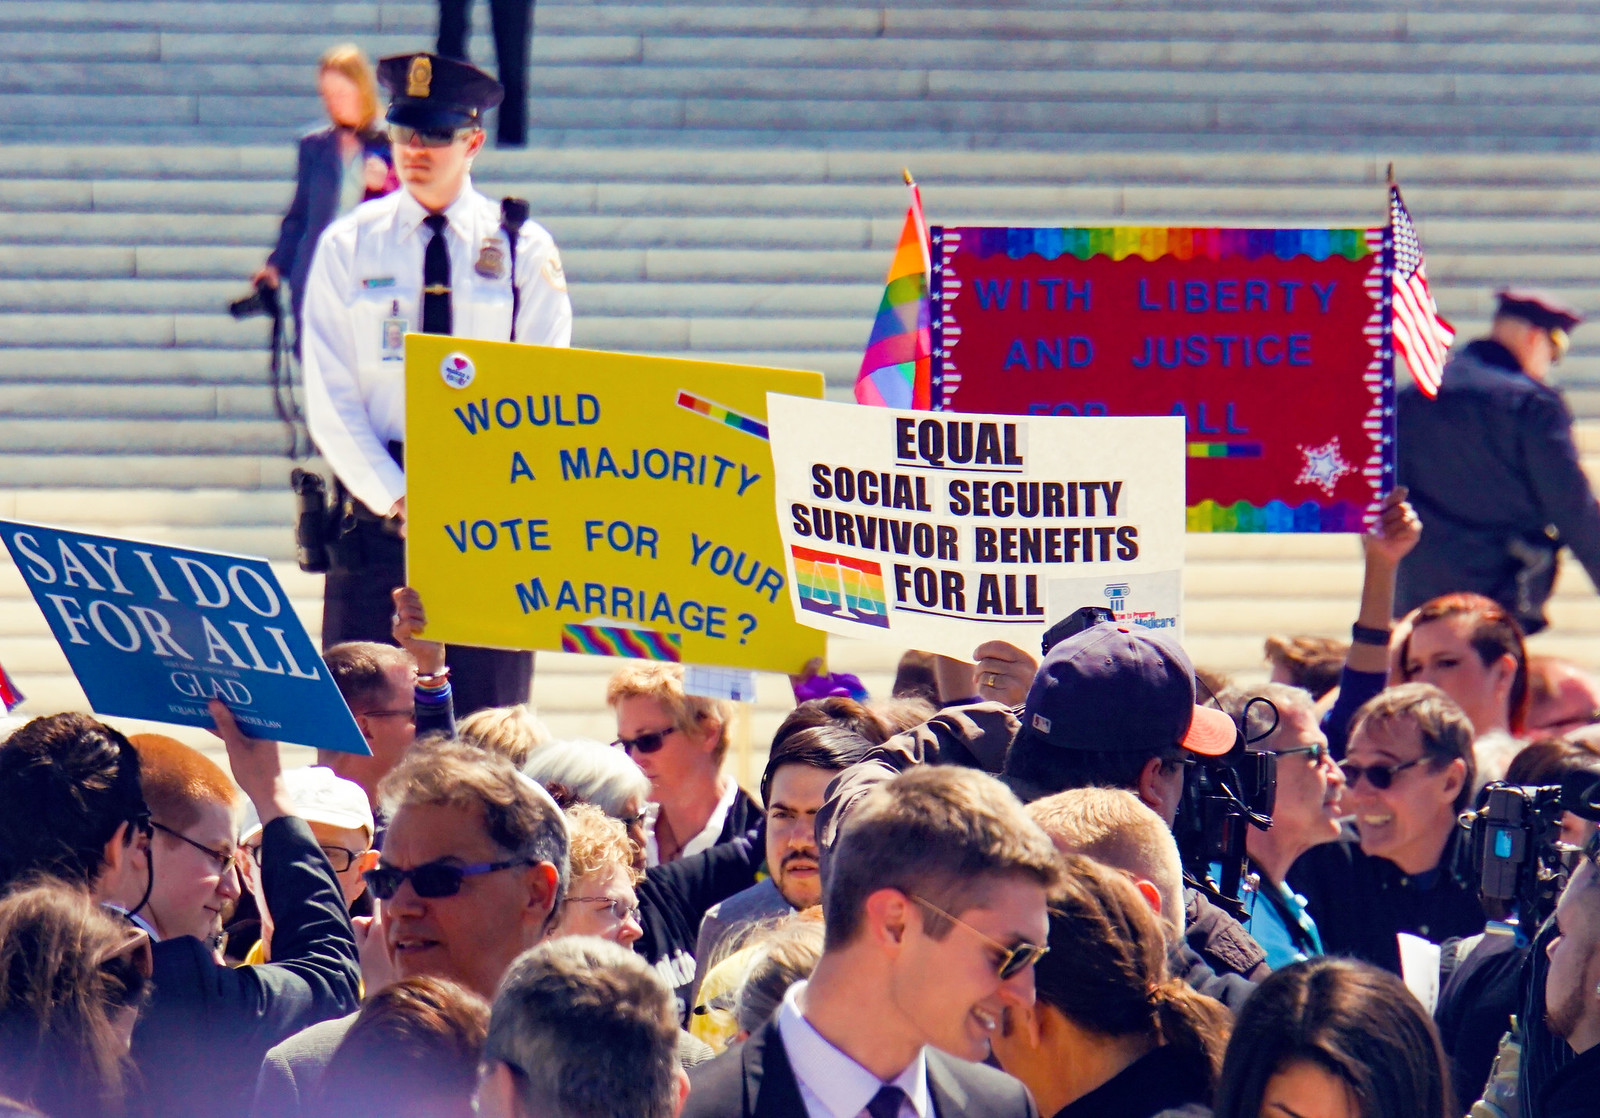 2015.04.28 SCOTUS DOMA, Washington, DC USA